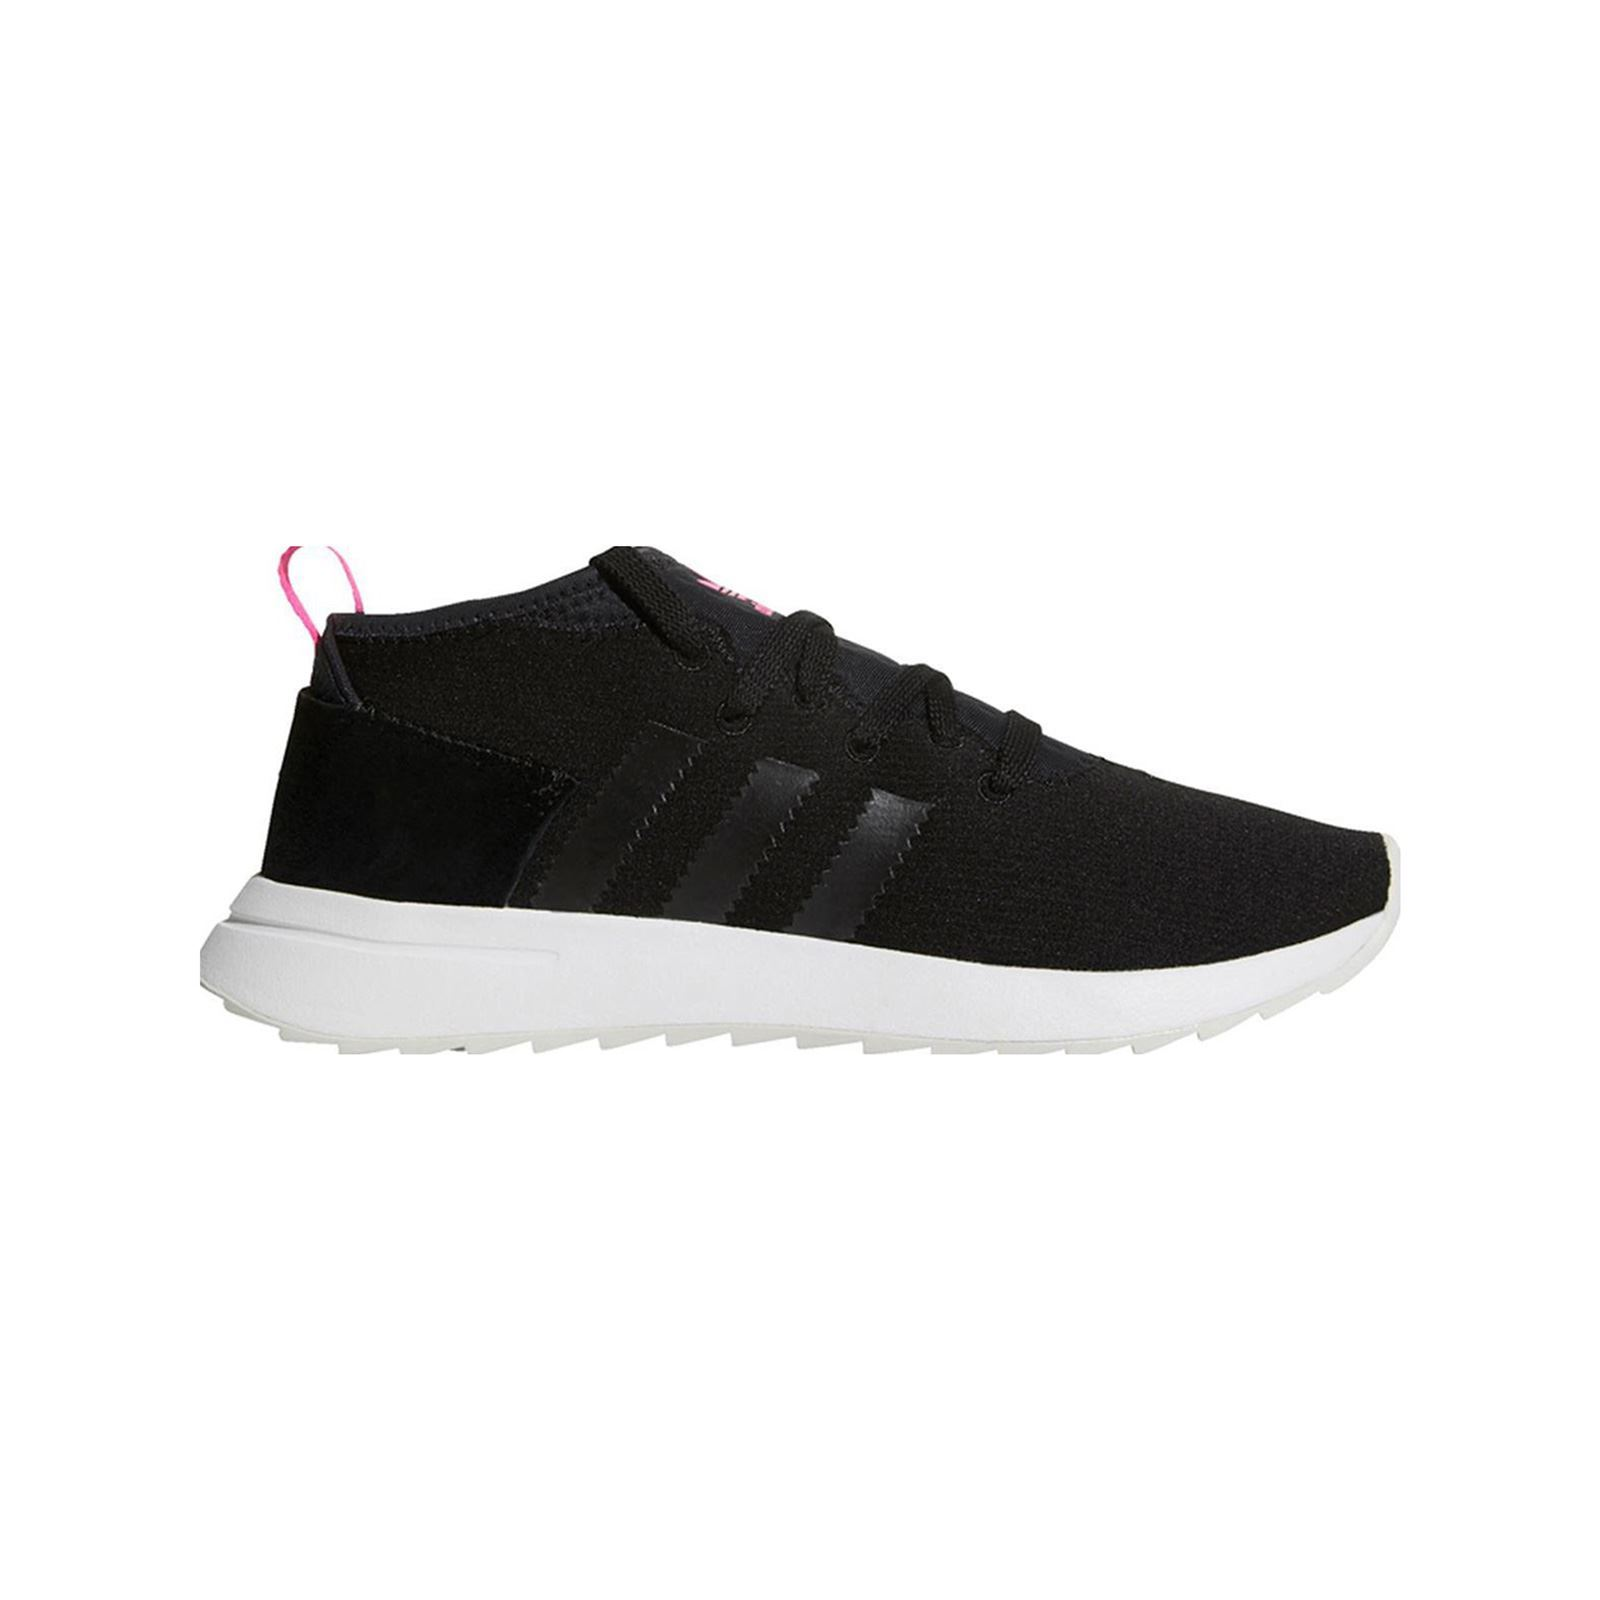 the best attitude f80b5 977e0 ADIDAS ORIGINALS Flb Mid W - Zapatillas - negro